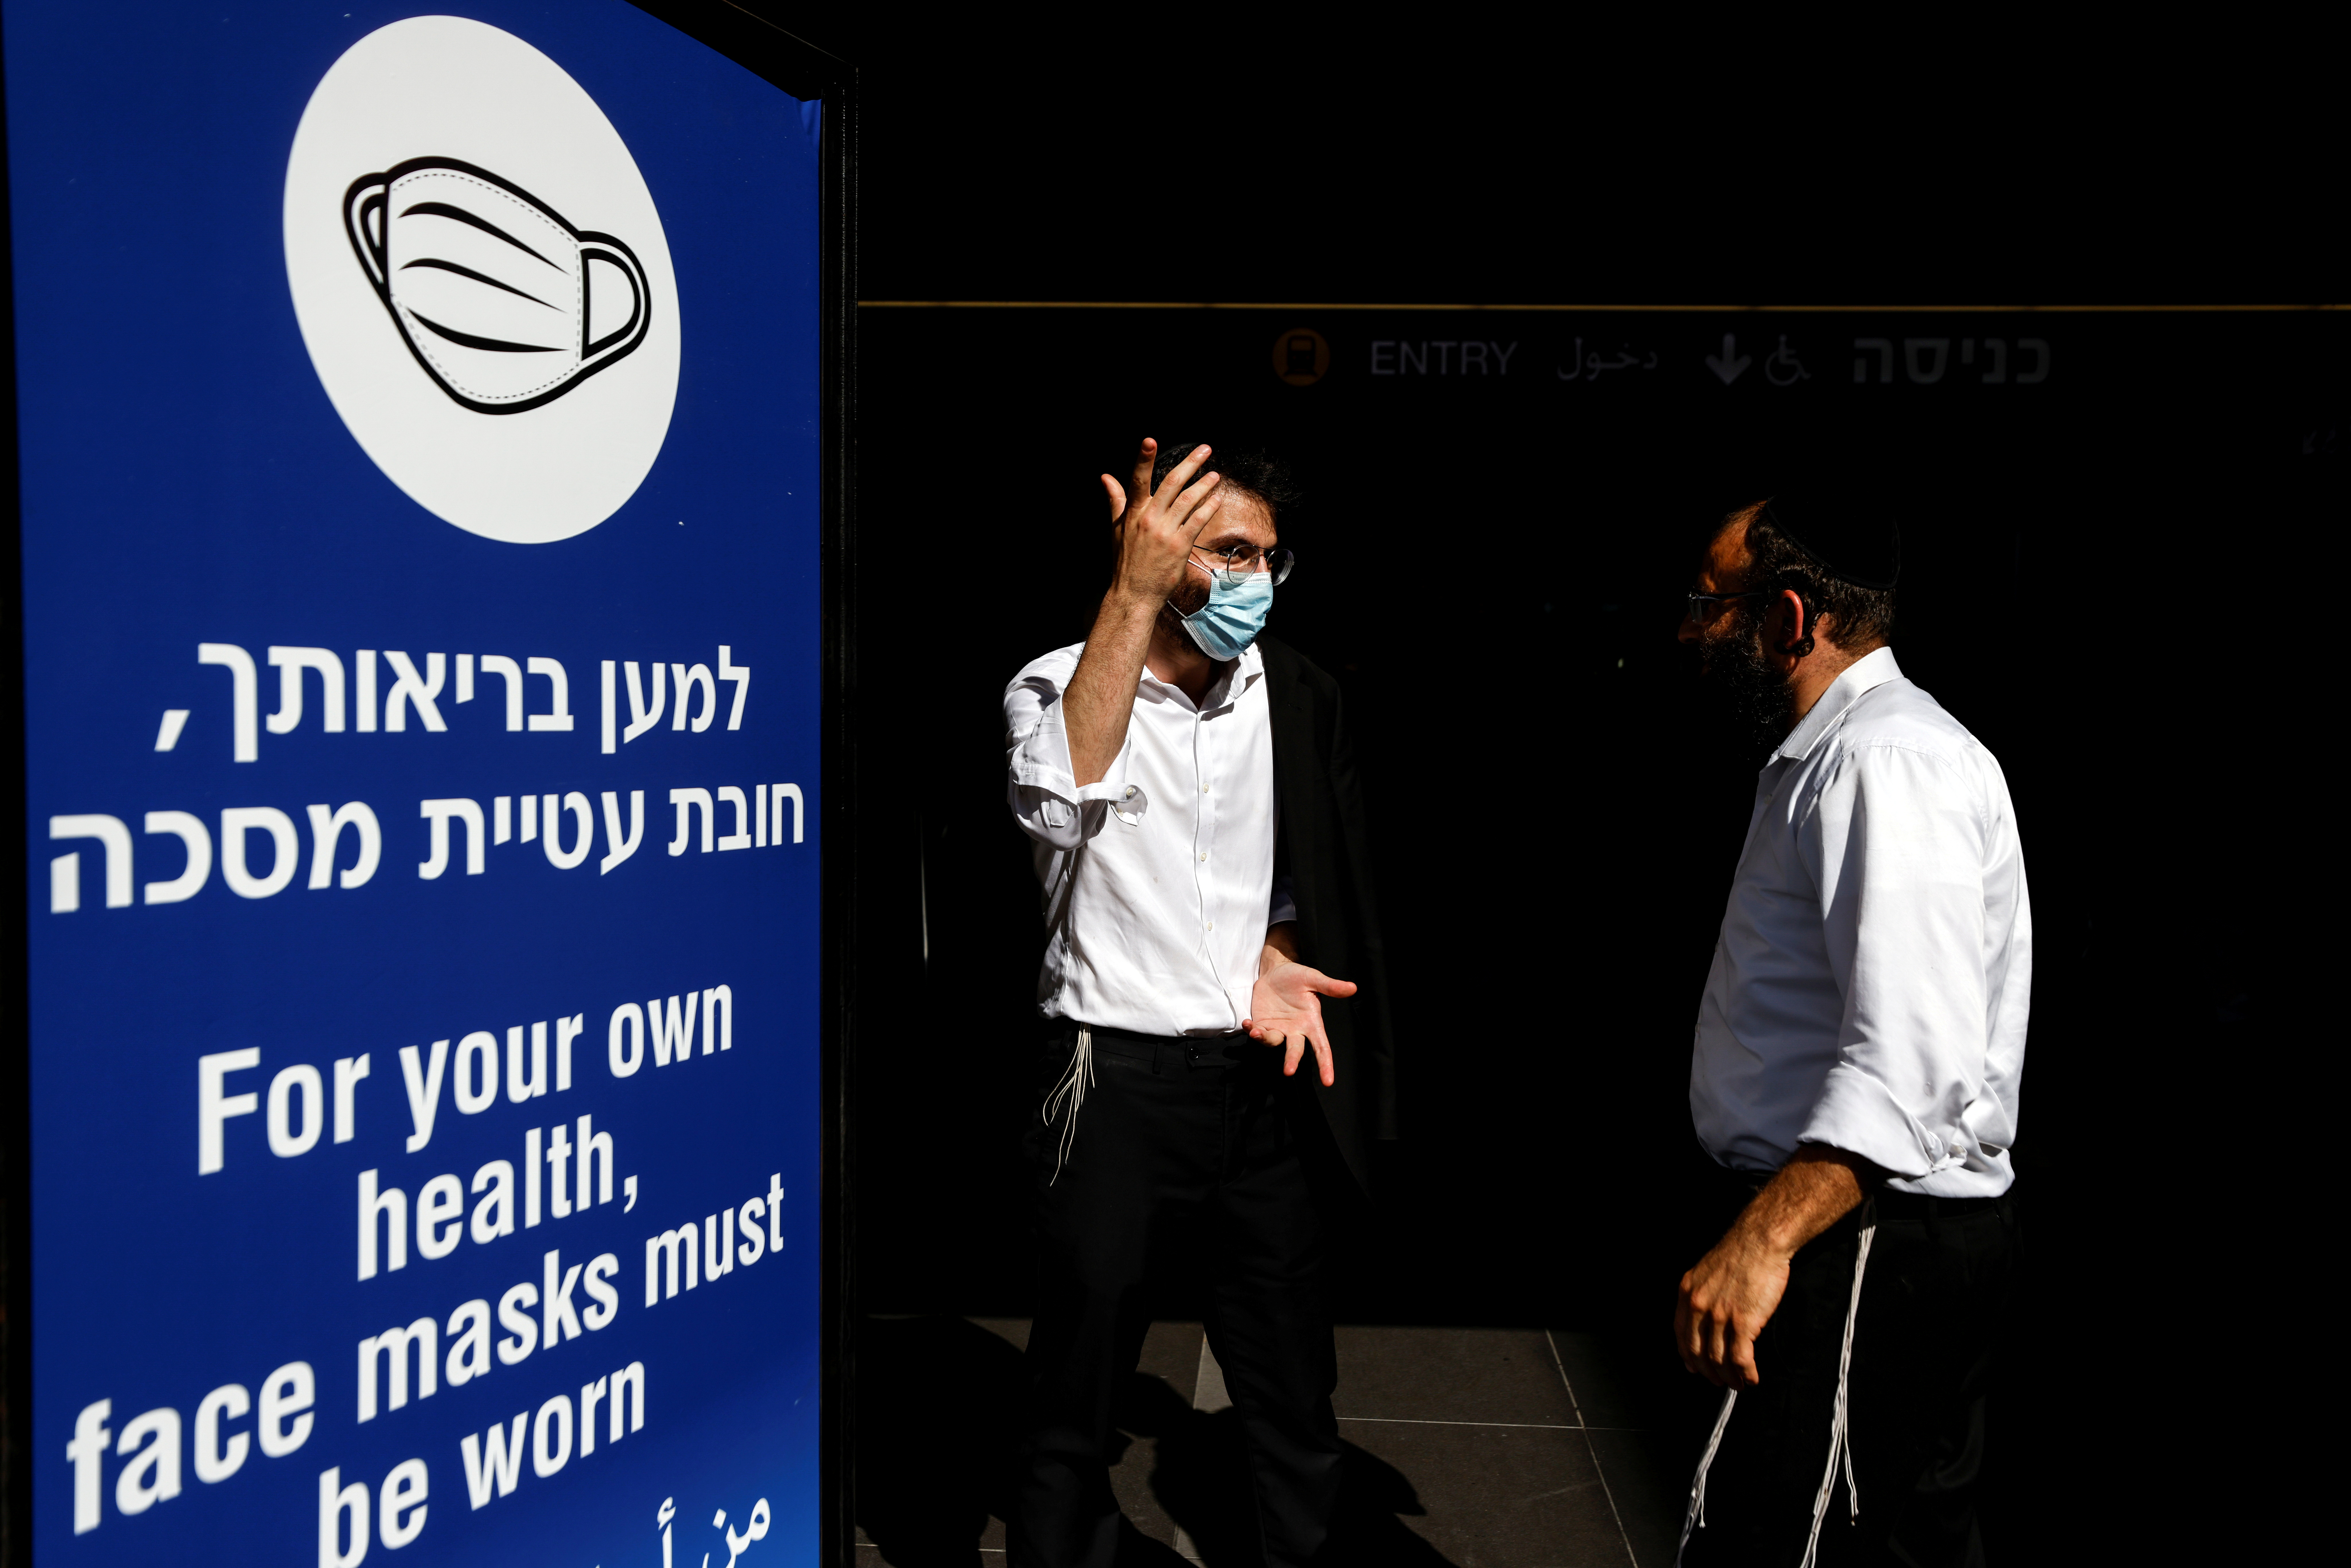 Men stand next to an information banner at Israel's Ben Gurion International Airport, amid a spread of the Delta variant of the coronavirus disease (COVID-19), near Tel Aviv, Israel July 8, 2021. REUTERS/Amir Cohen/File Photo